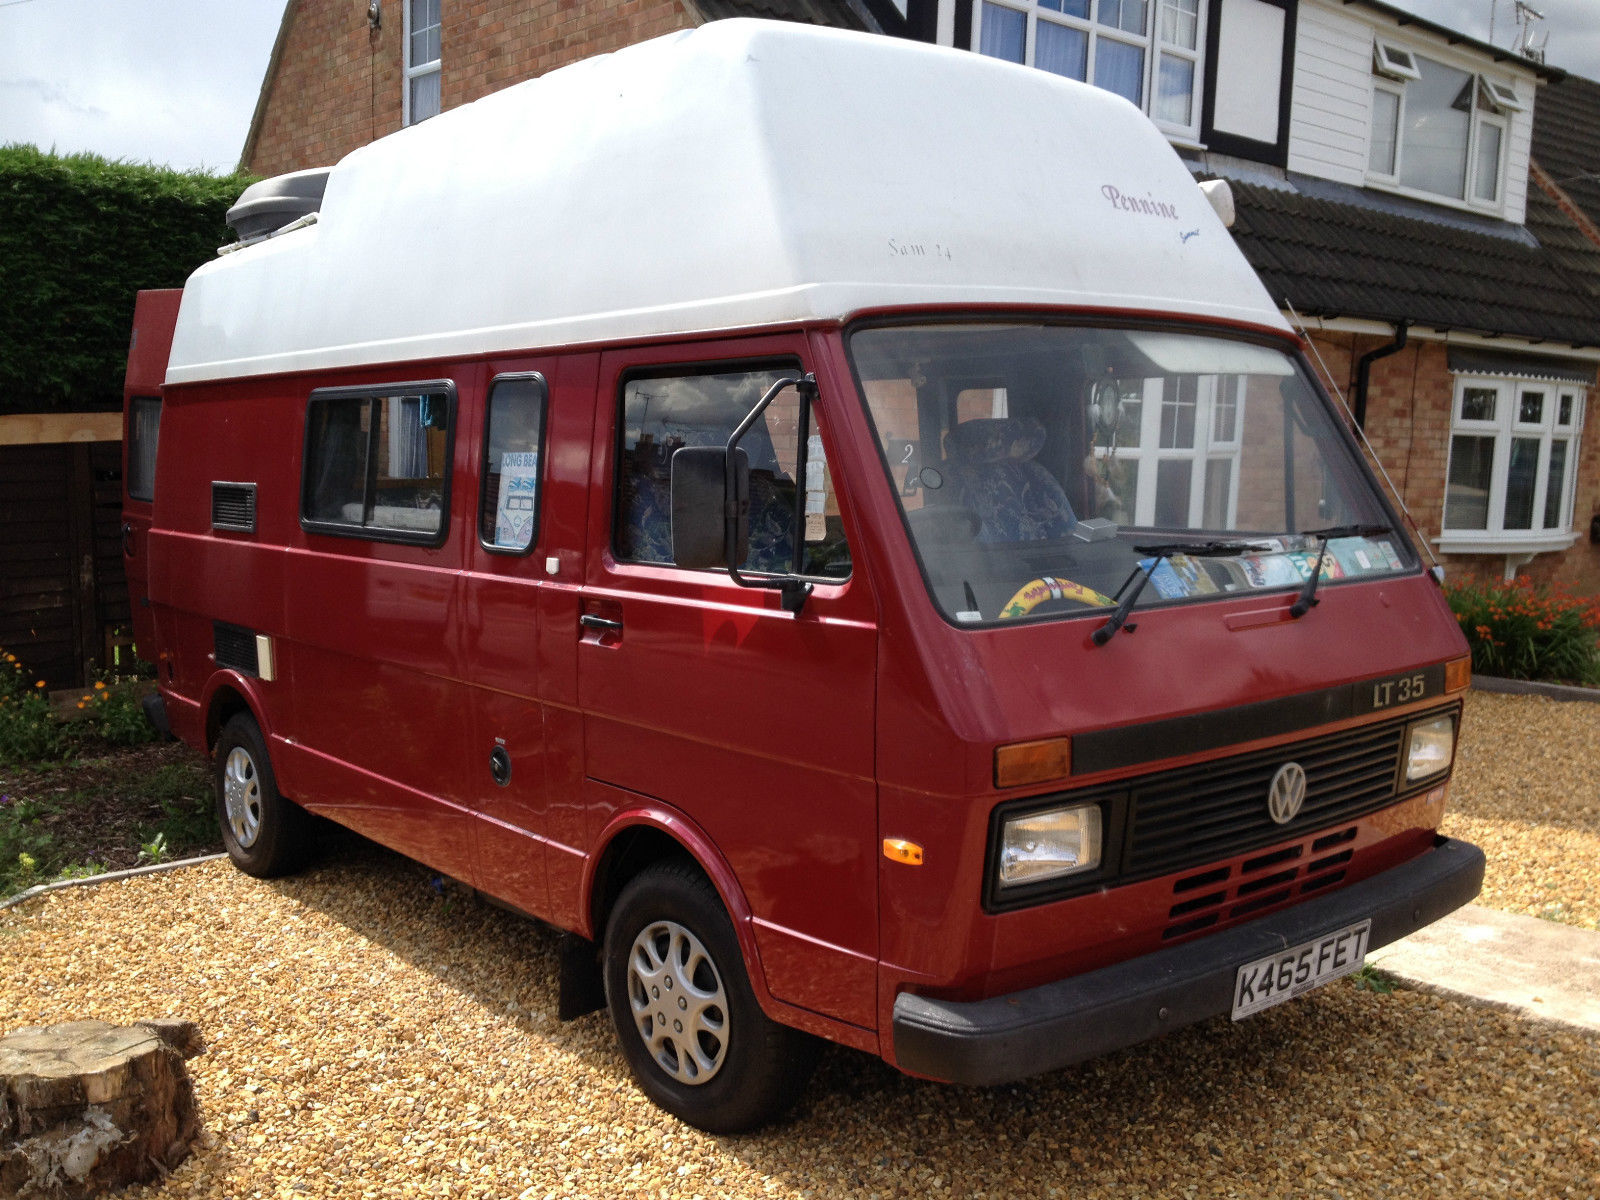 Used Rvs 1993 Vw Lt35 Campervan For Sale For Sale By Owner